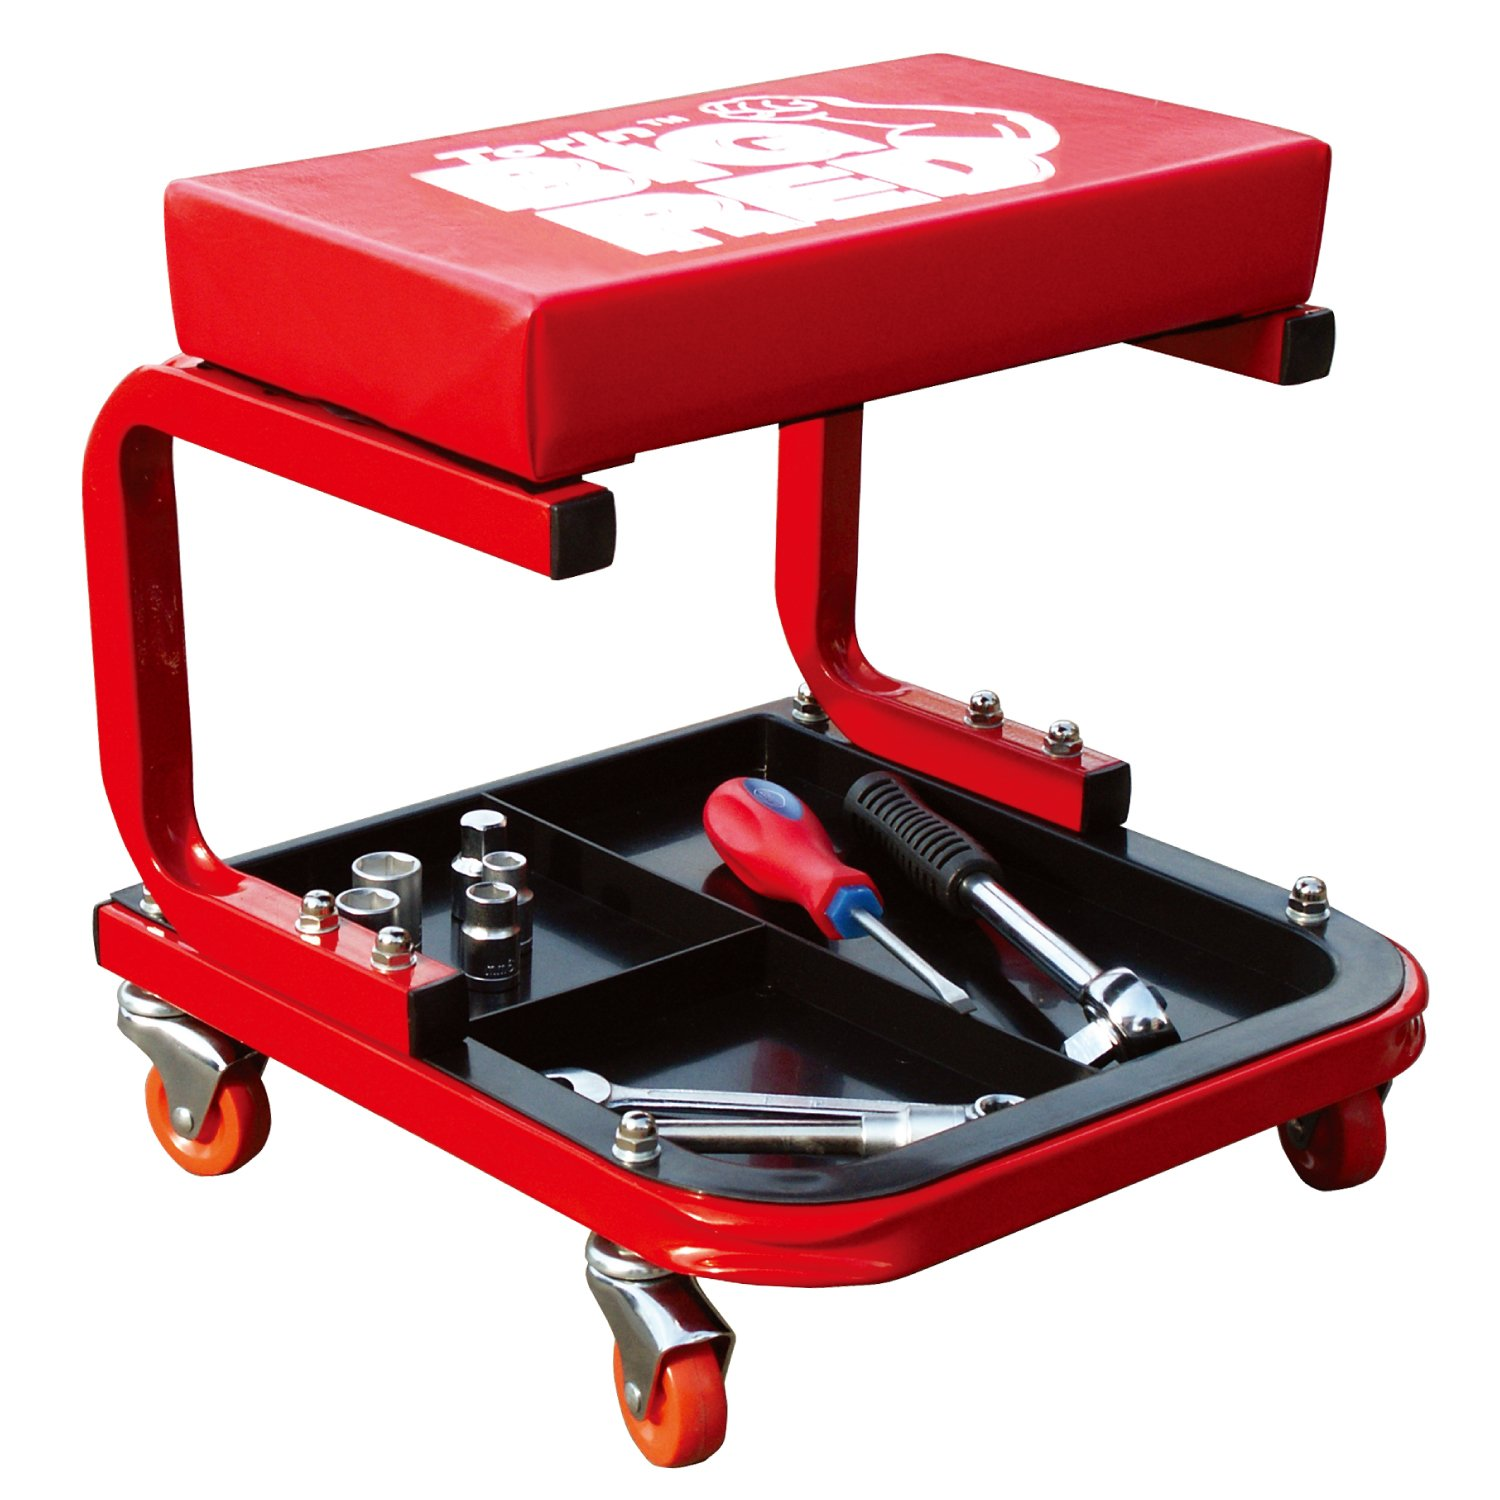 Torin Big Red Rolling Creeper Garage/Shop Seat